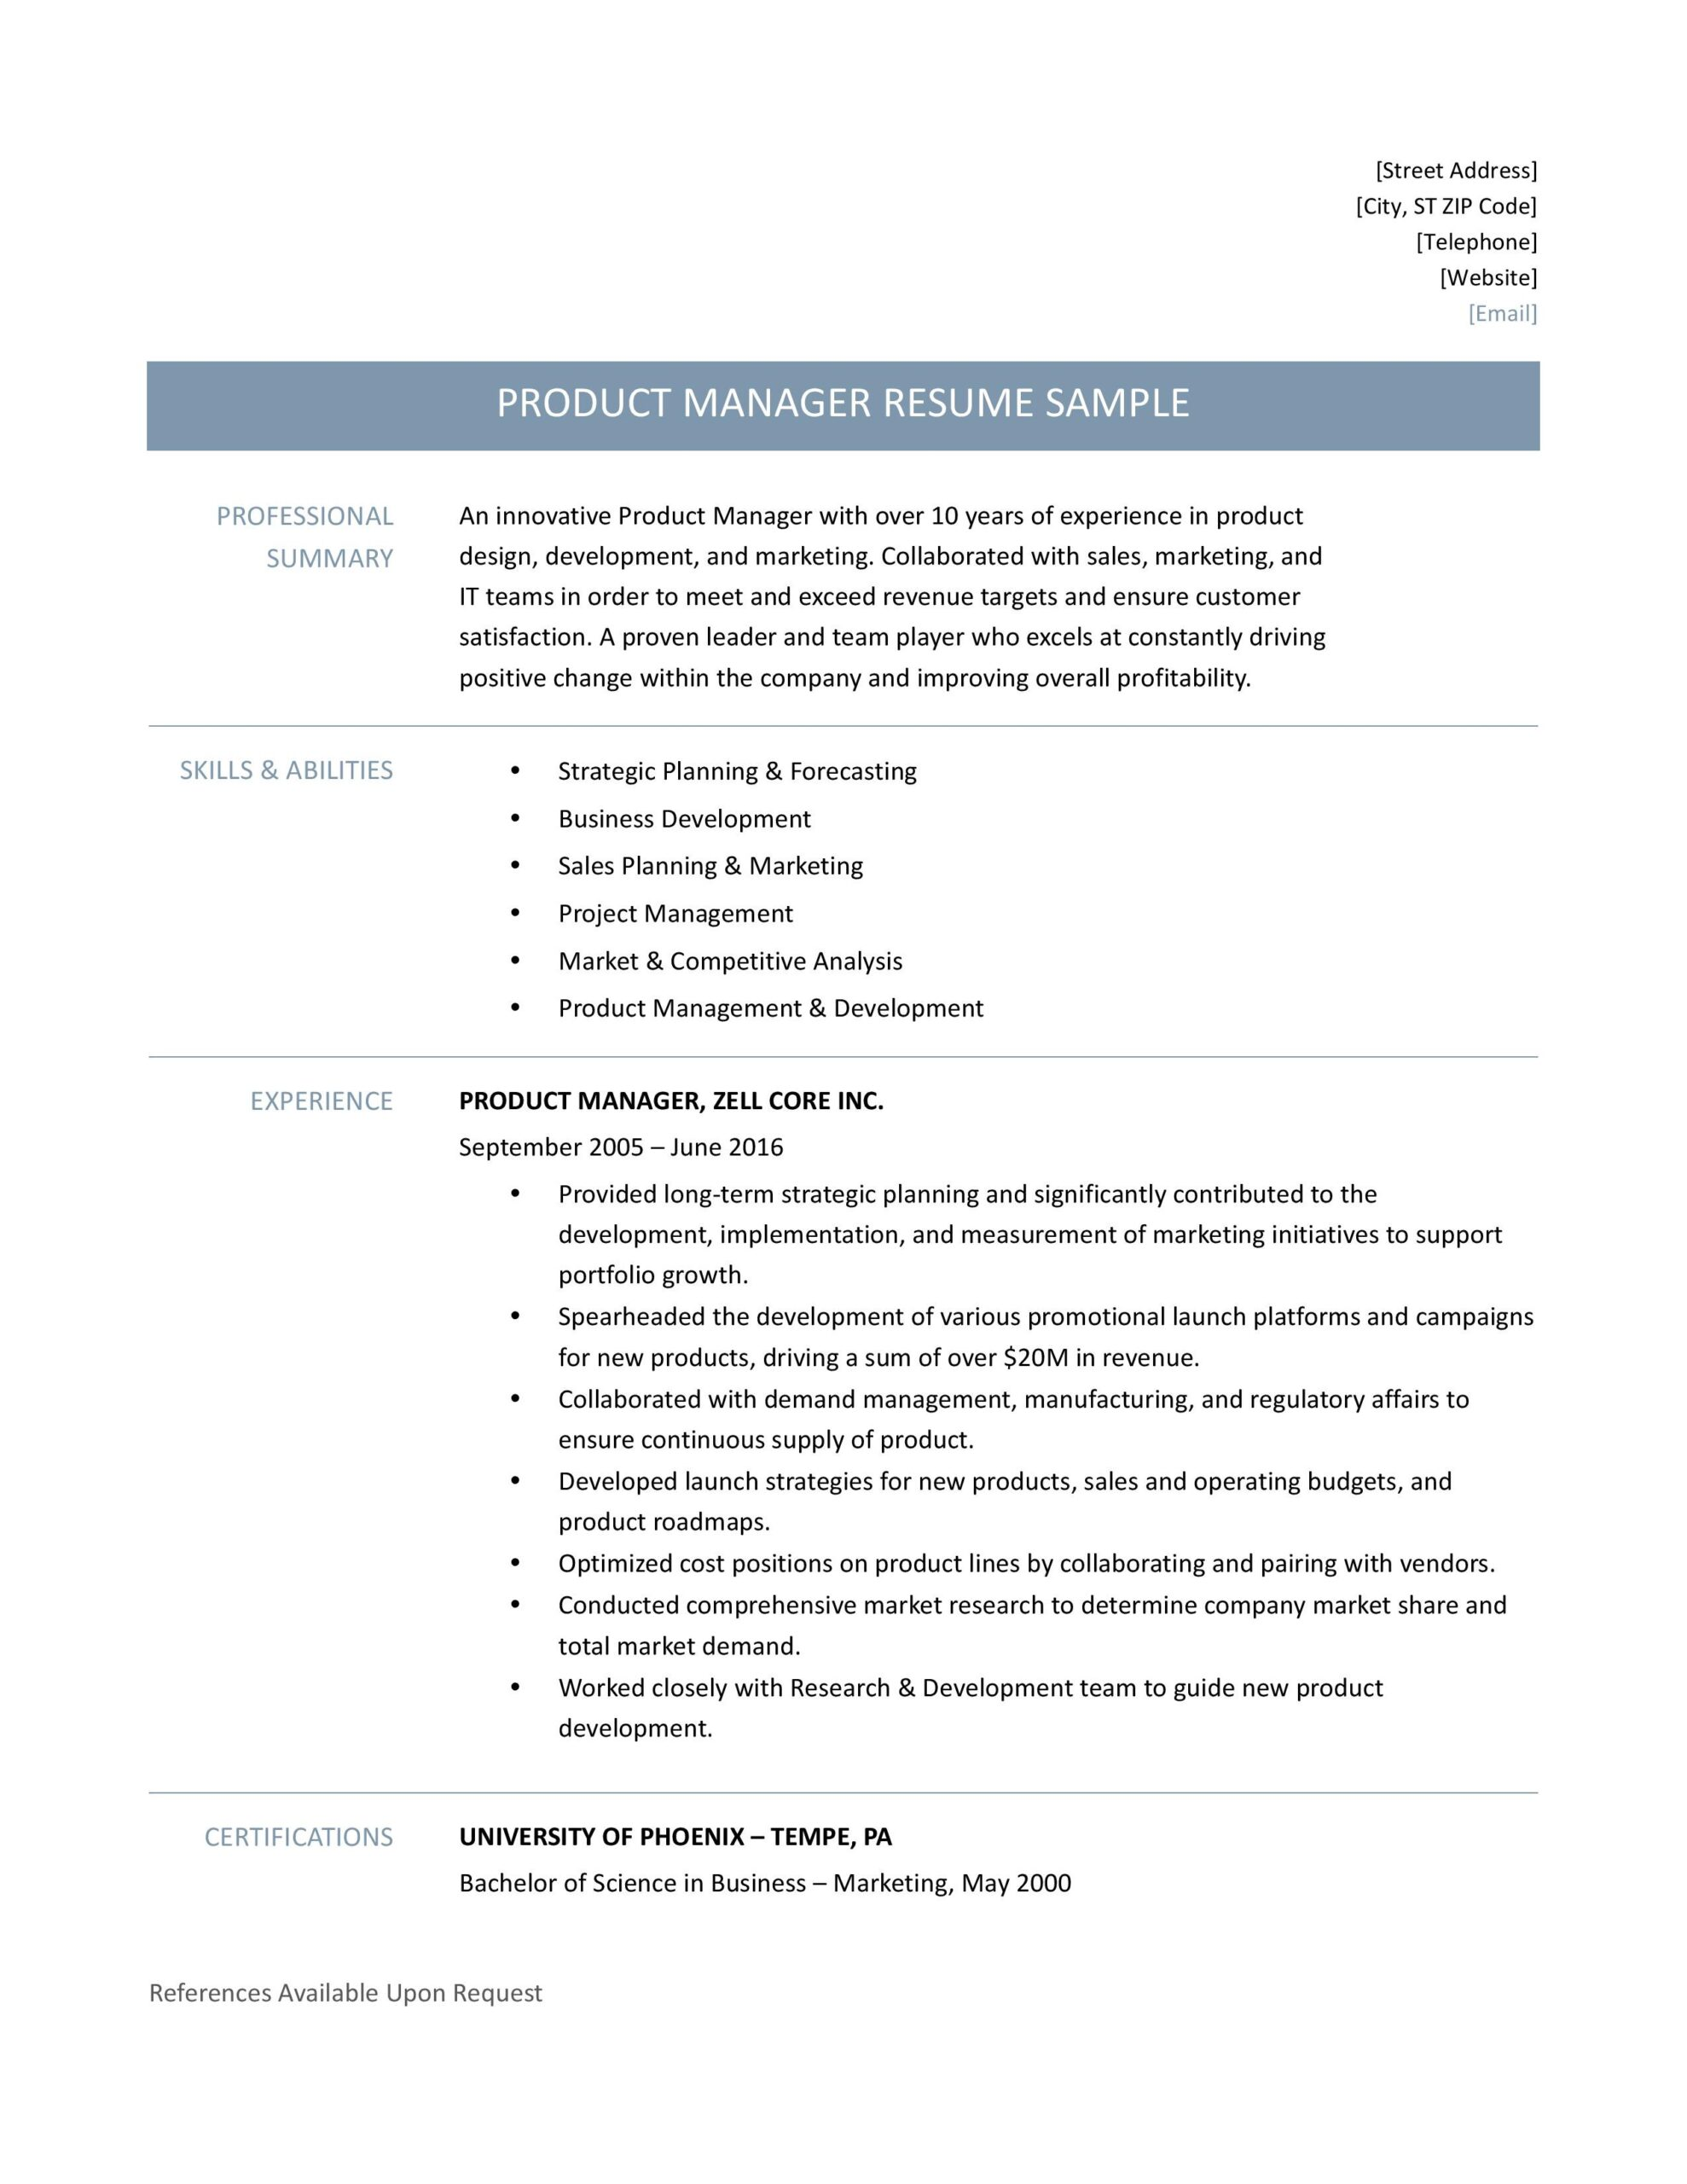 product manager resume samples template and job description by builders medium writer Resume Product Manager Resume Writer